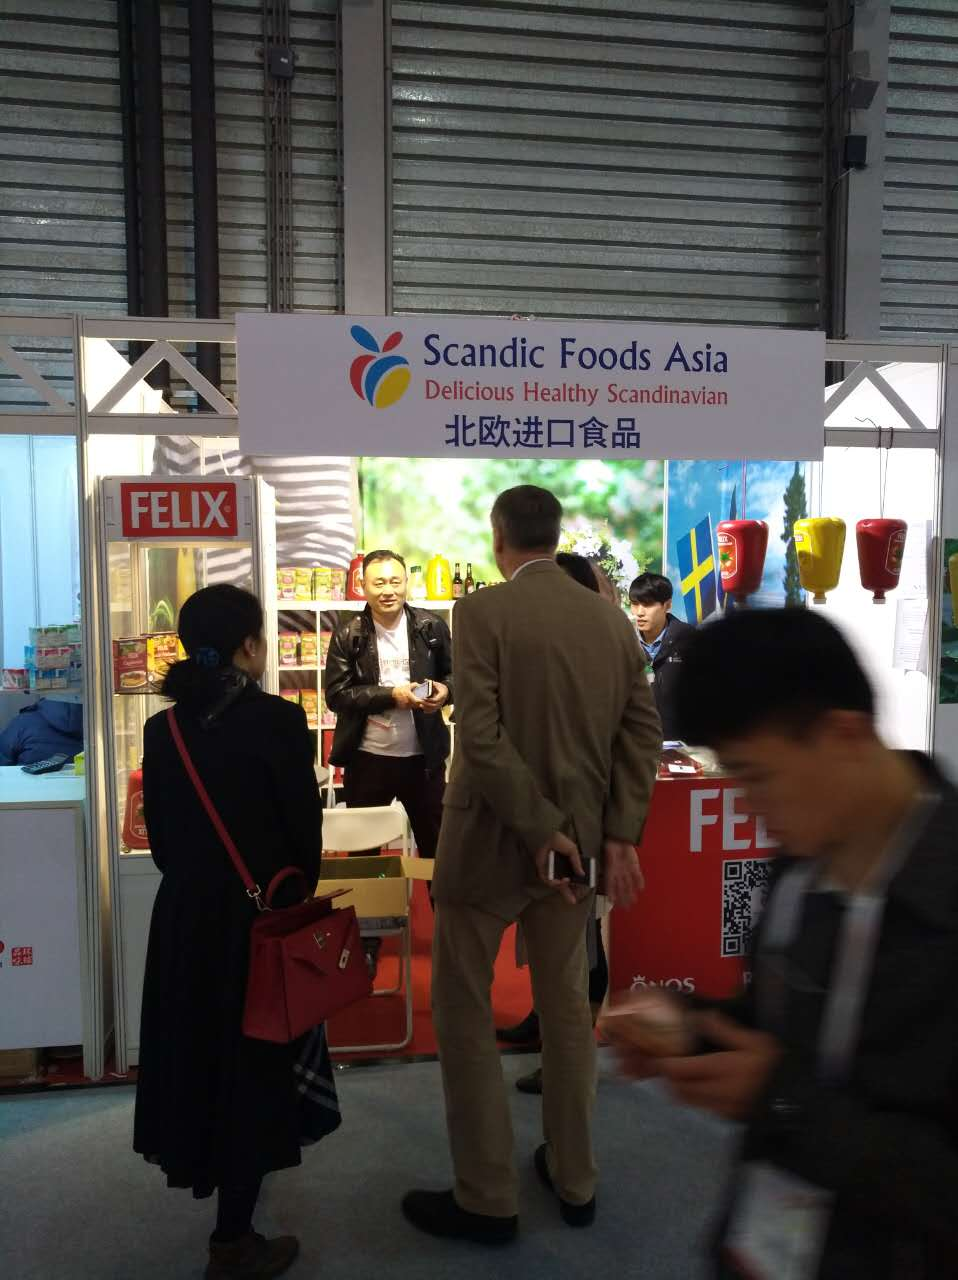 scandic foods fhc small